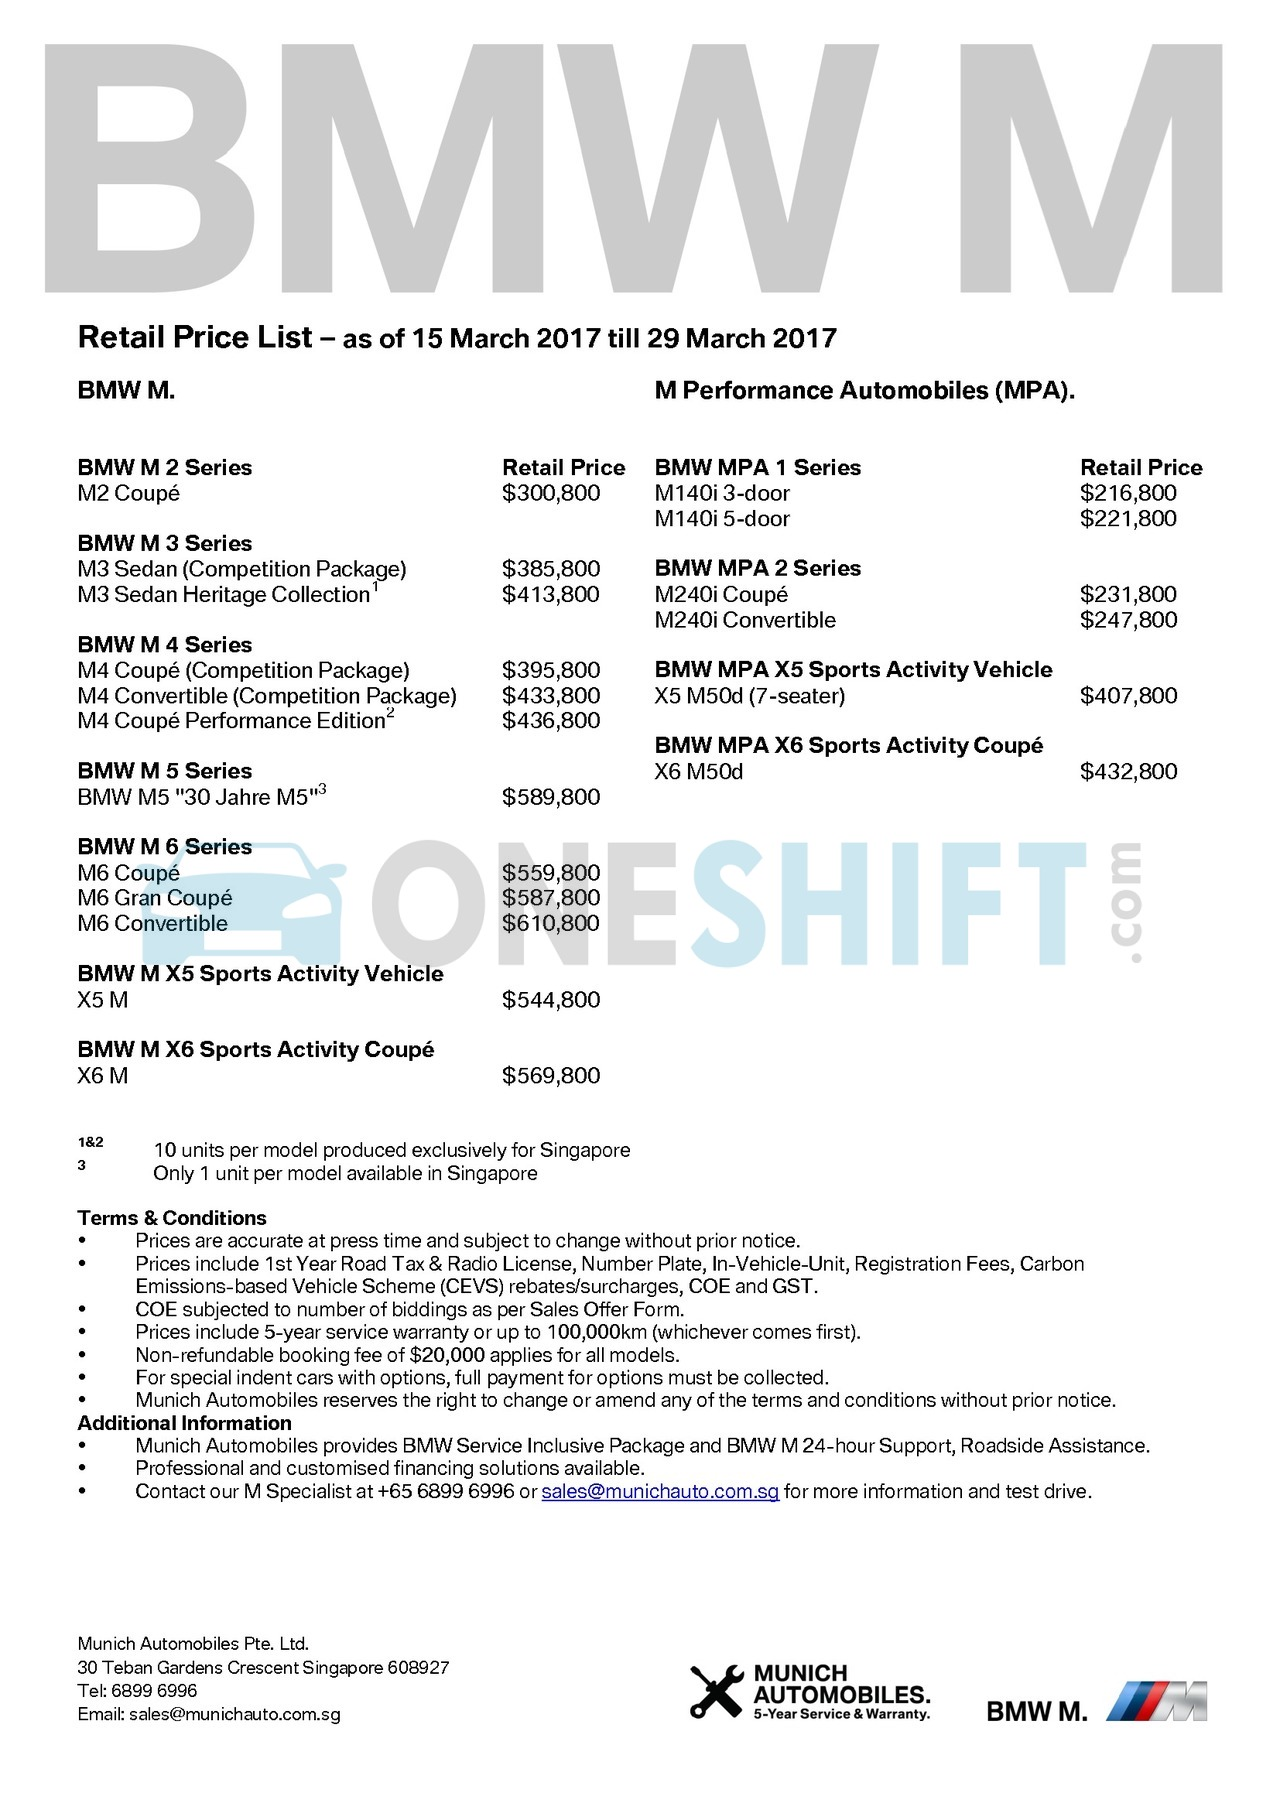 bmw-m-series Price List 3-16-2017 Page 1